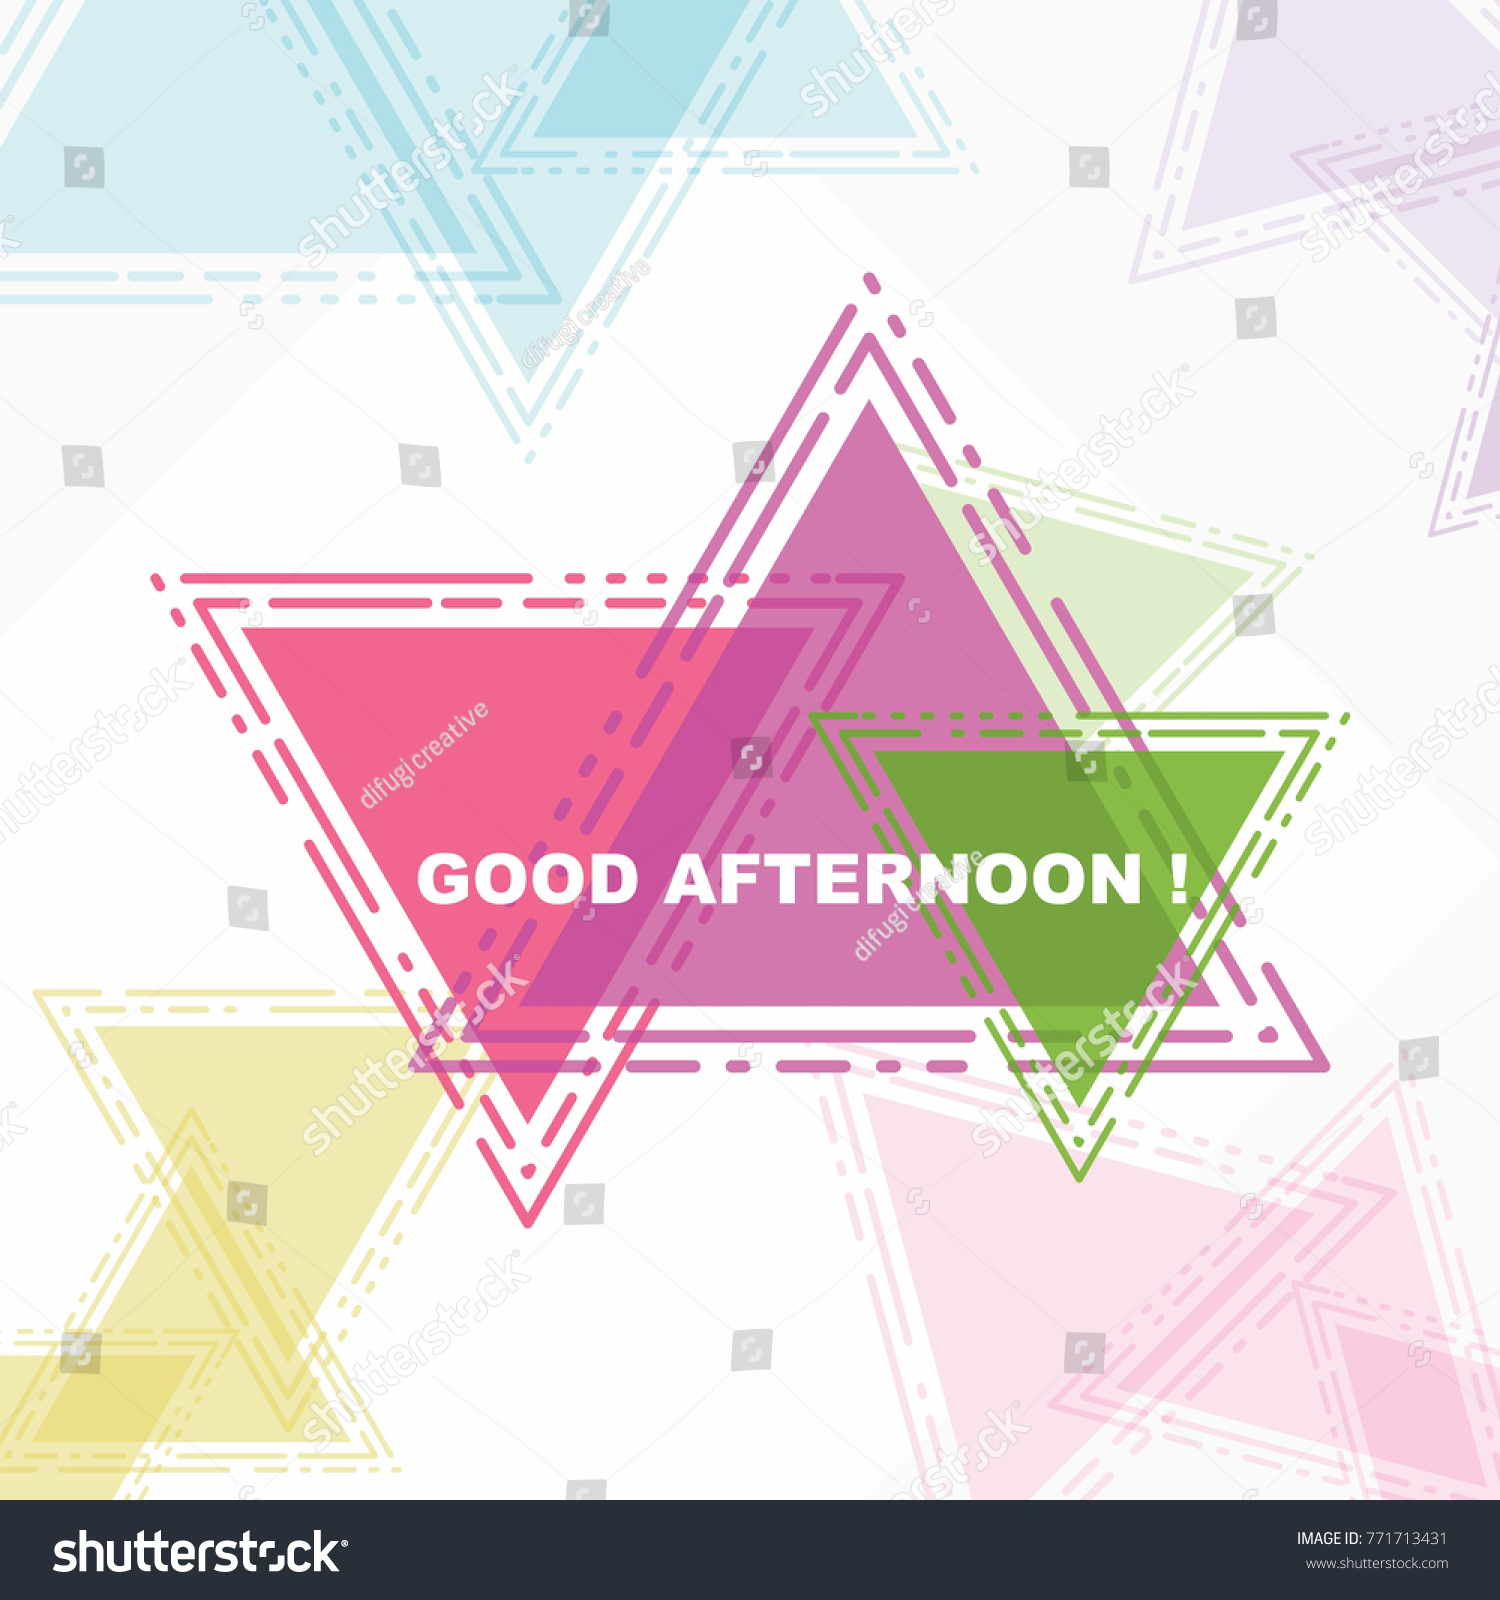 Good Afternoon Beautiful Greeting Card Poster Stock Vector 771713431